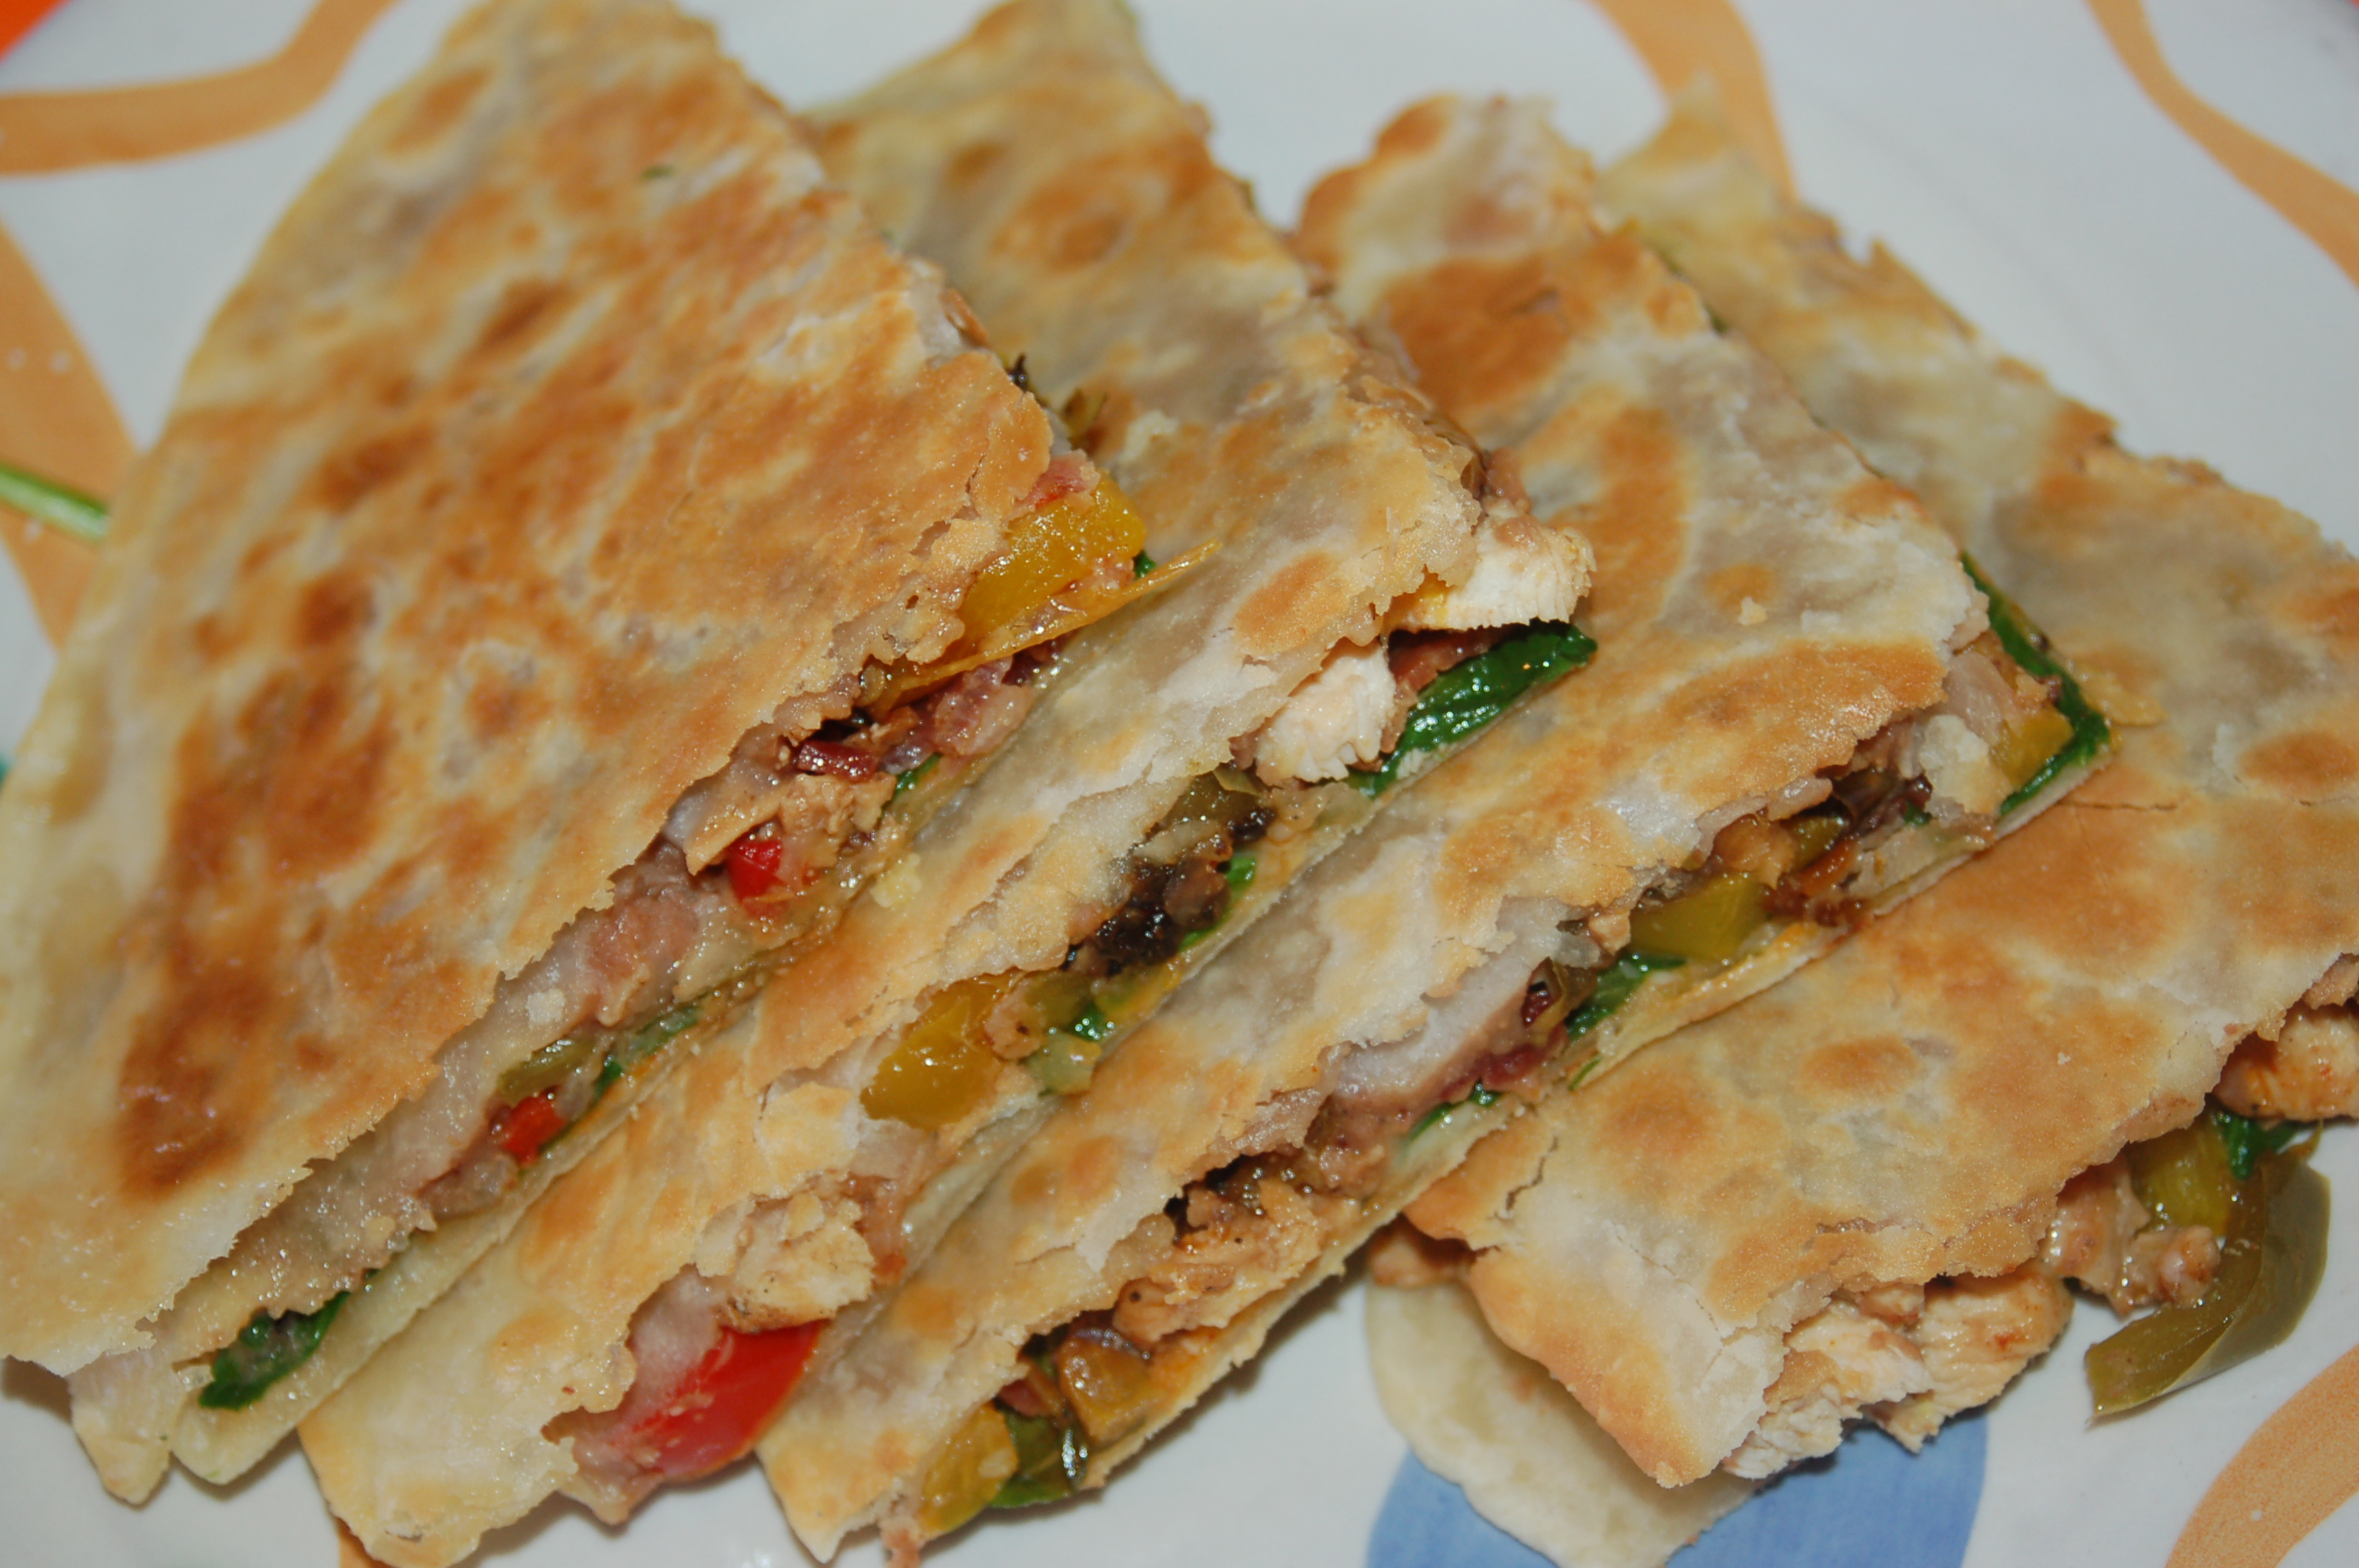 ... quesadillas grilled tequila chicken and hatch chile quesadillas